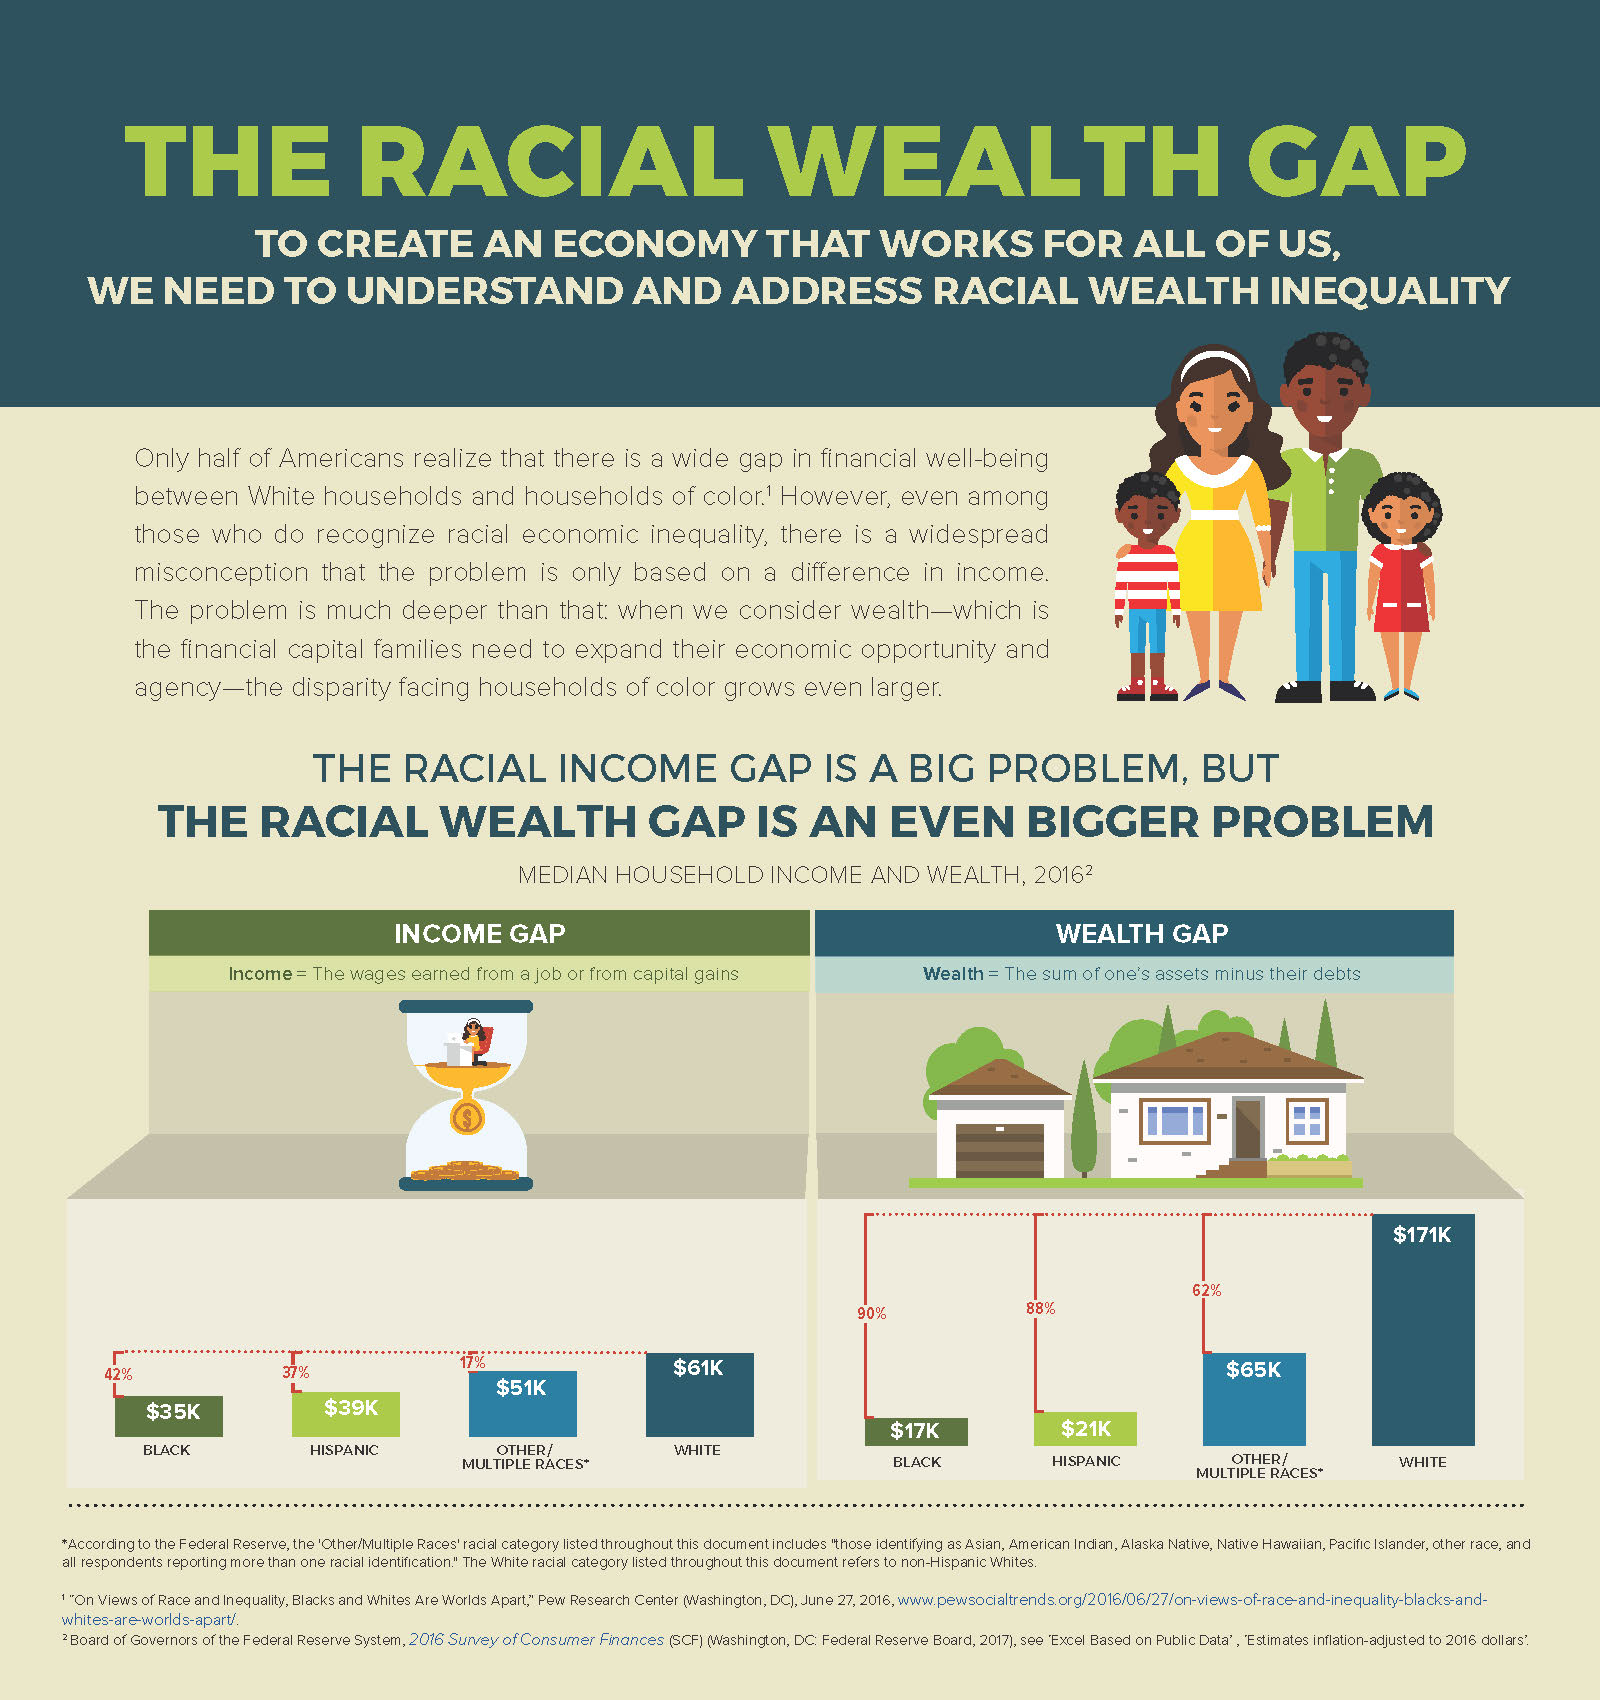 heta nya produkter nyanser av nya lägre priser Infographic: The Racial Wealth Gap | Prosperity Now